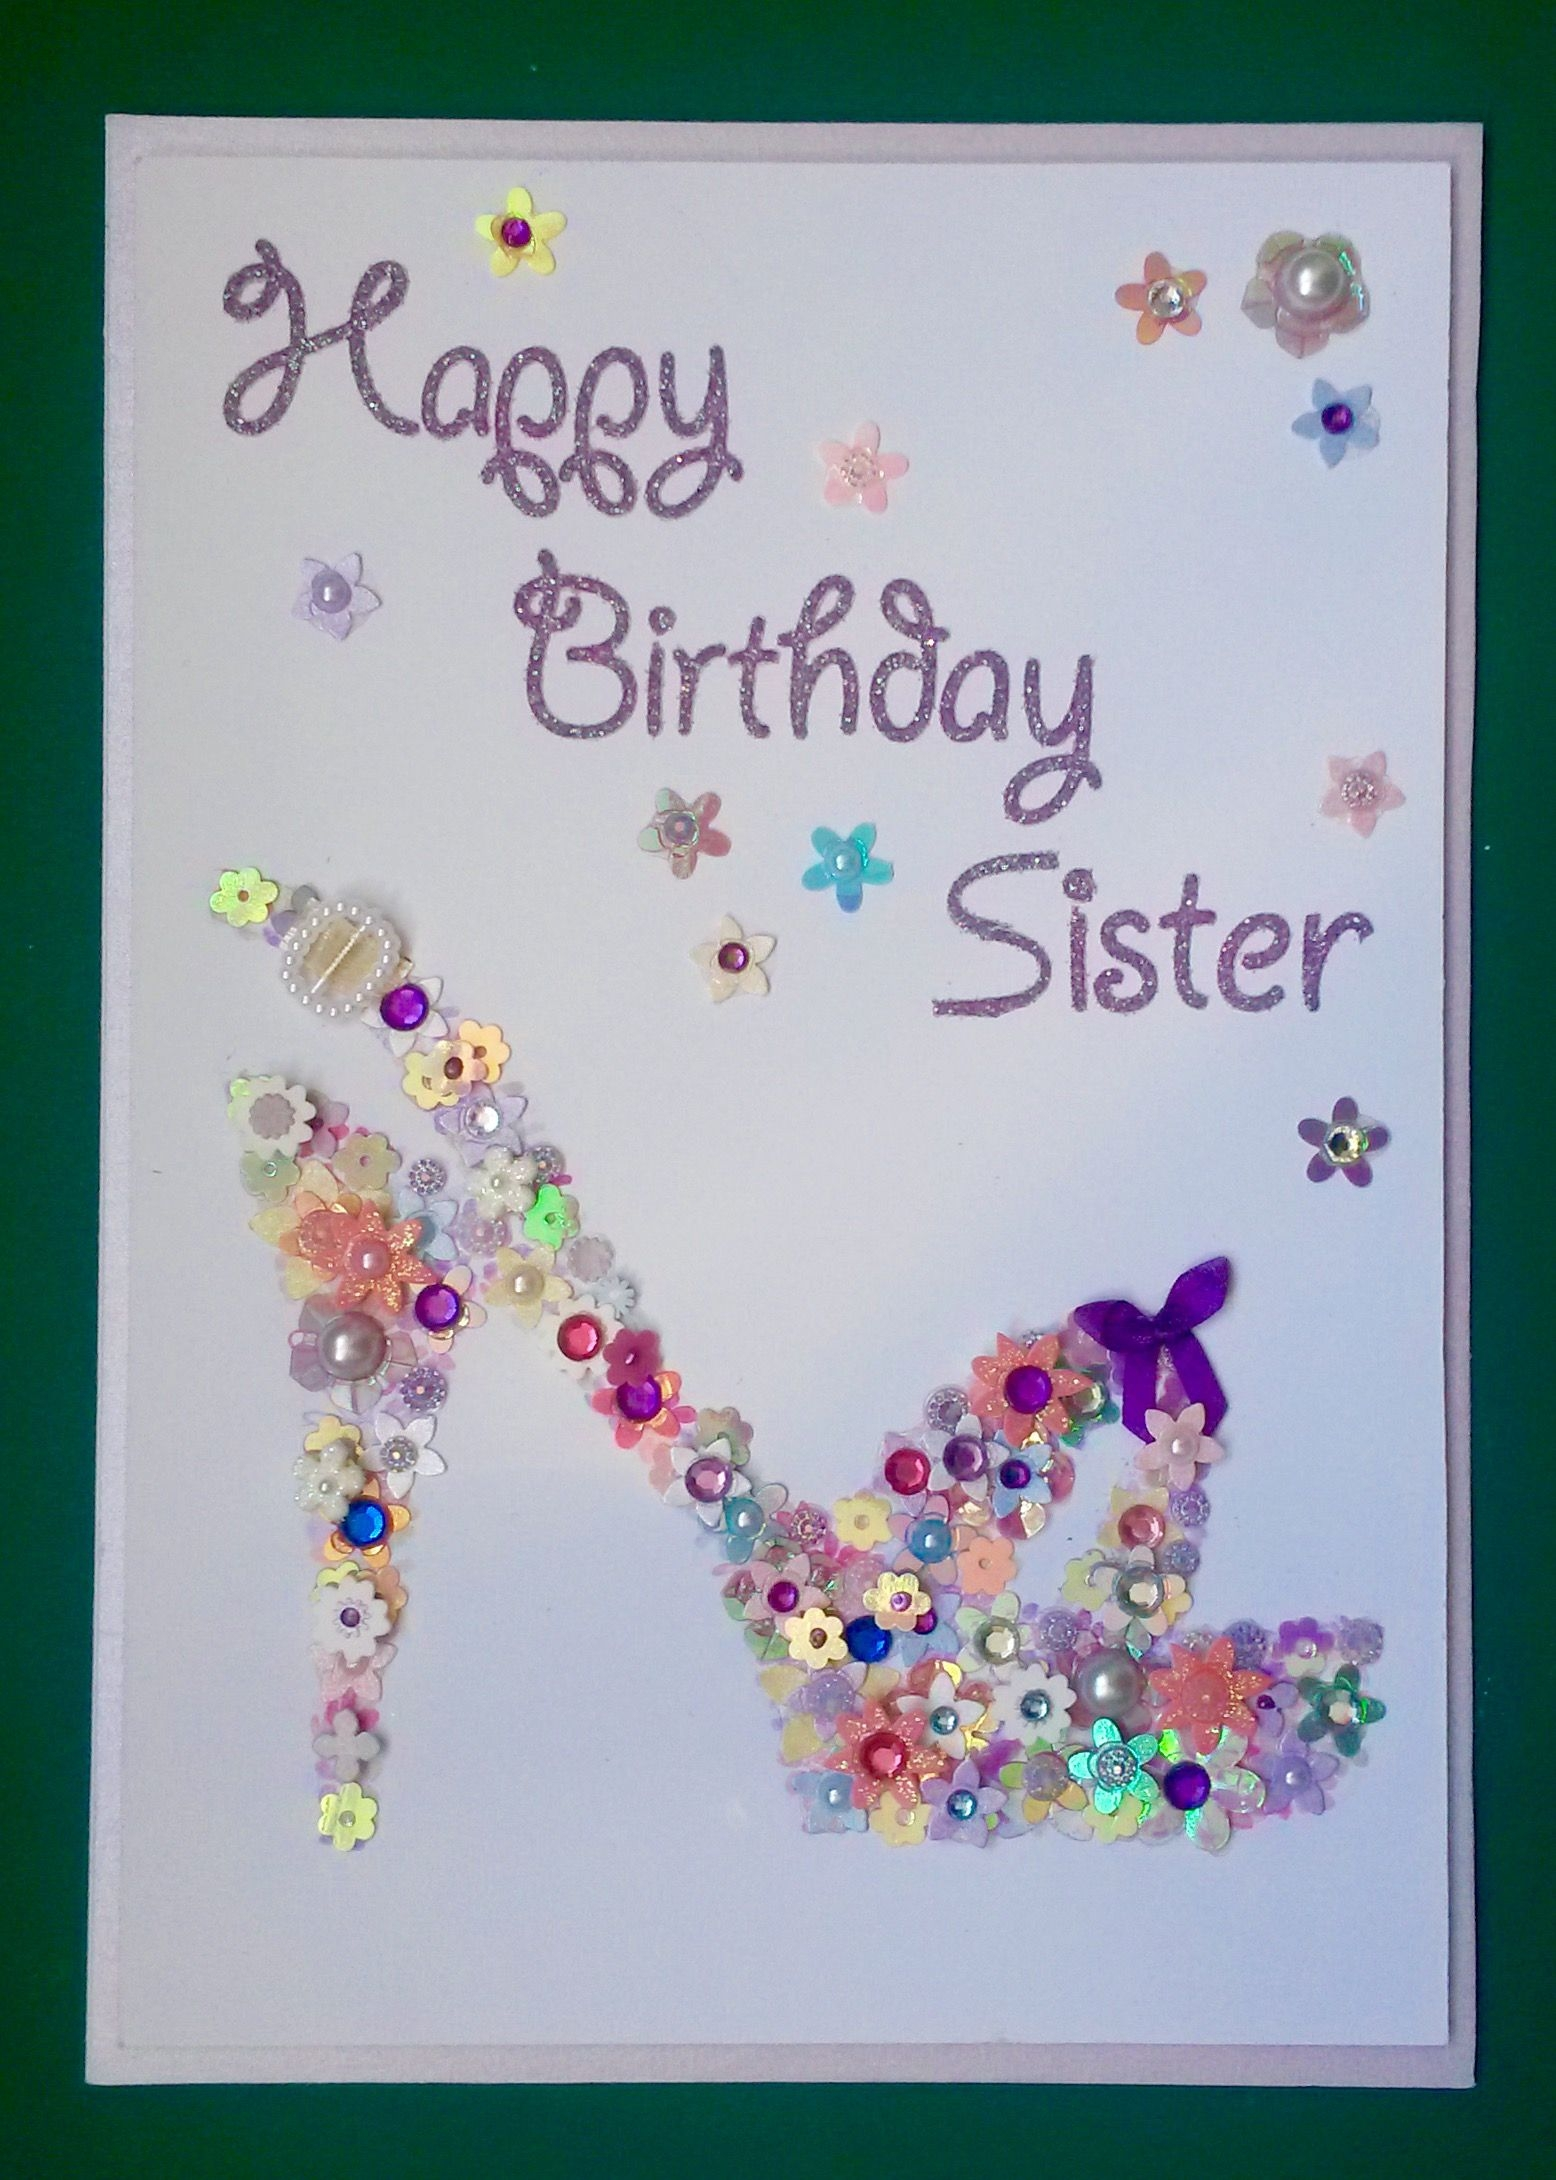 happy birthday sister cards collection as the template